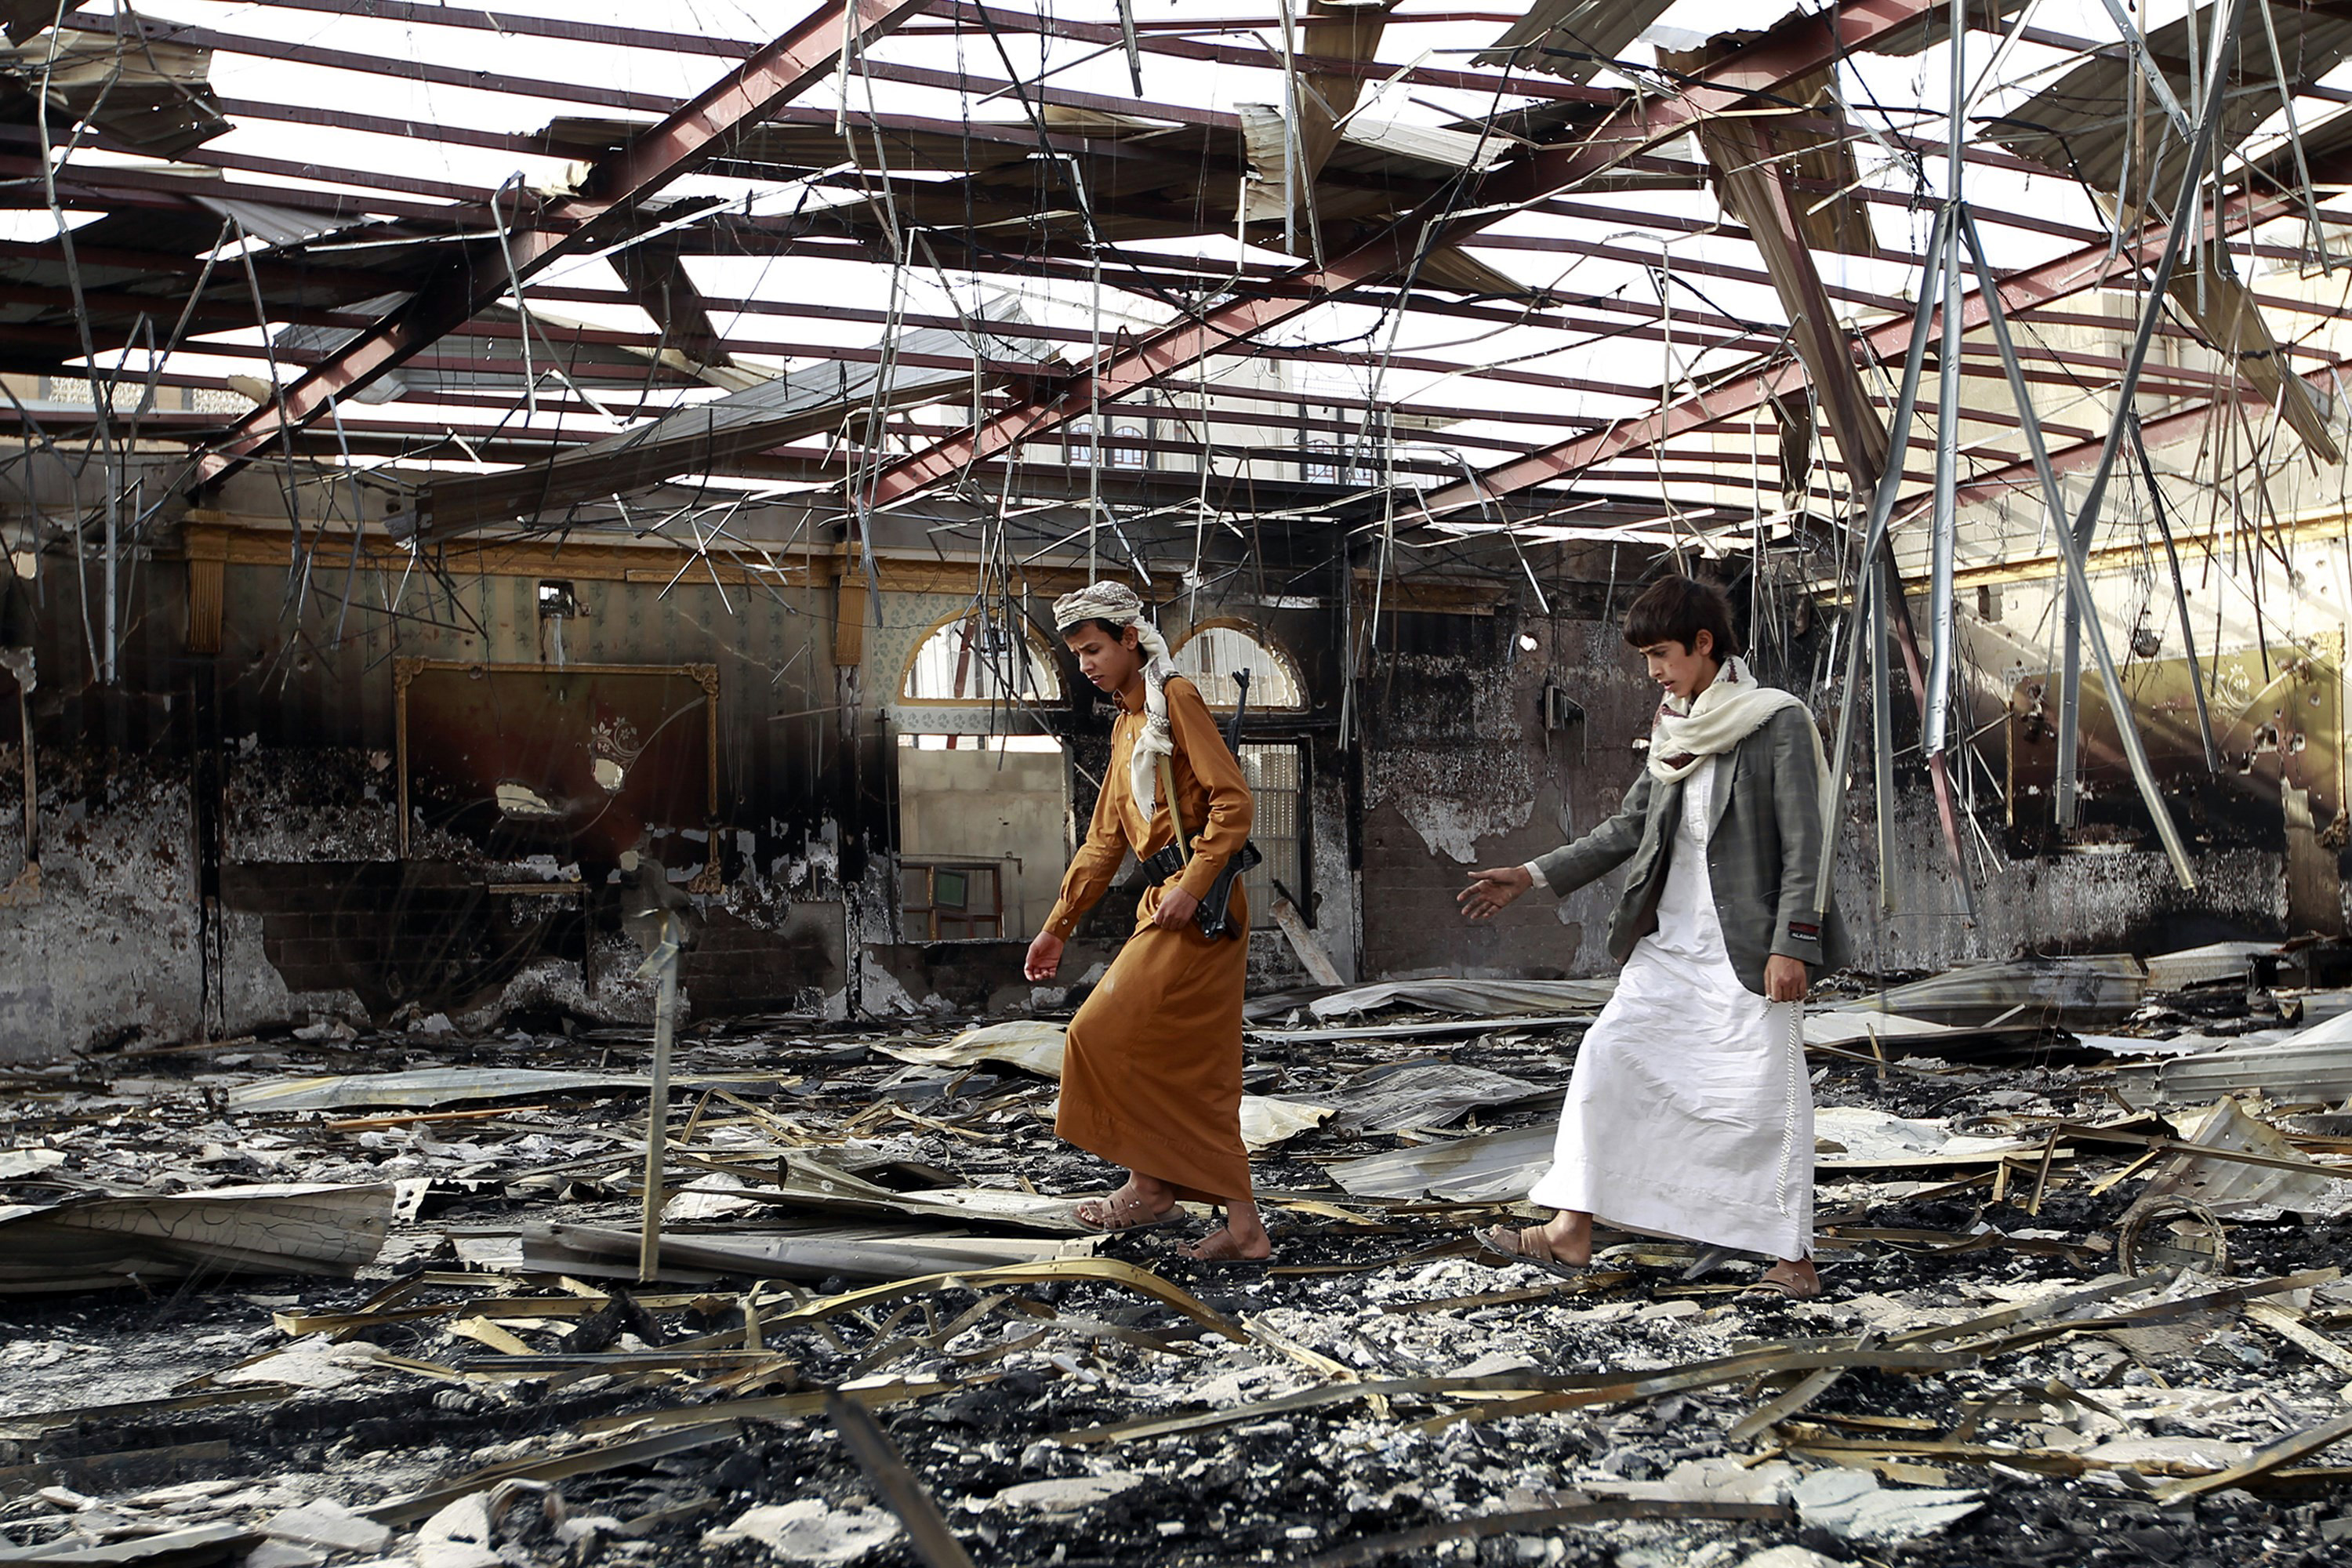 Armed Yemenis walk on the debris at a wedding hall which was reportedly hit by a Saudi-led coalition air strike in the capital Sanaa, on July 10, 2015, a few hours before a humanitarian pause was to take effect. The humanitarian pause in the war in Yemen will be